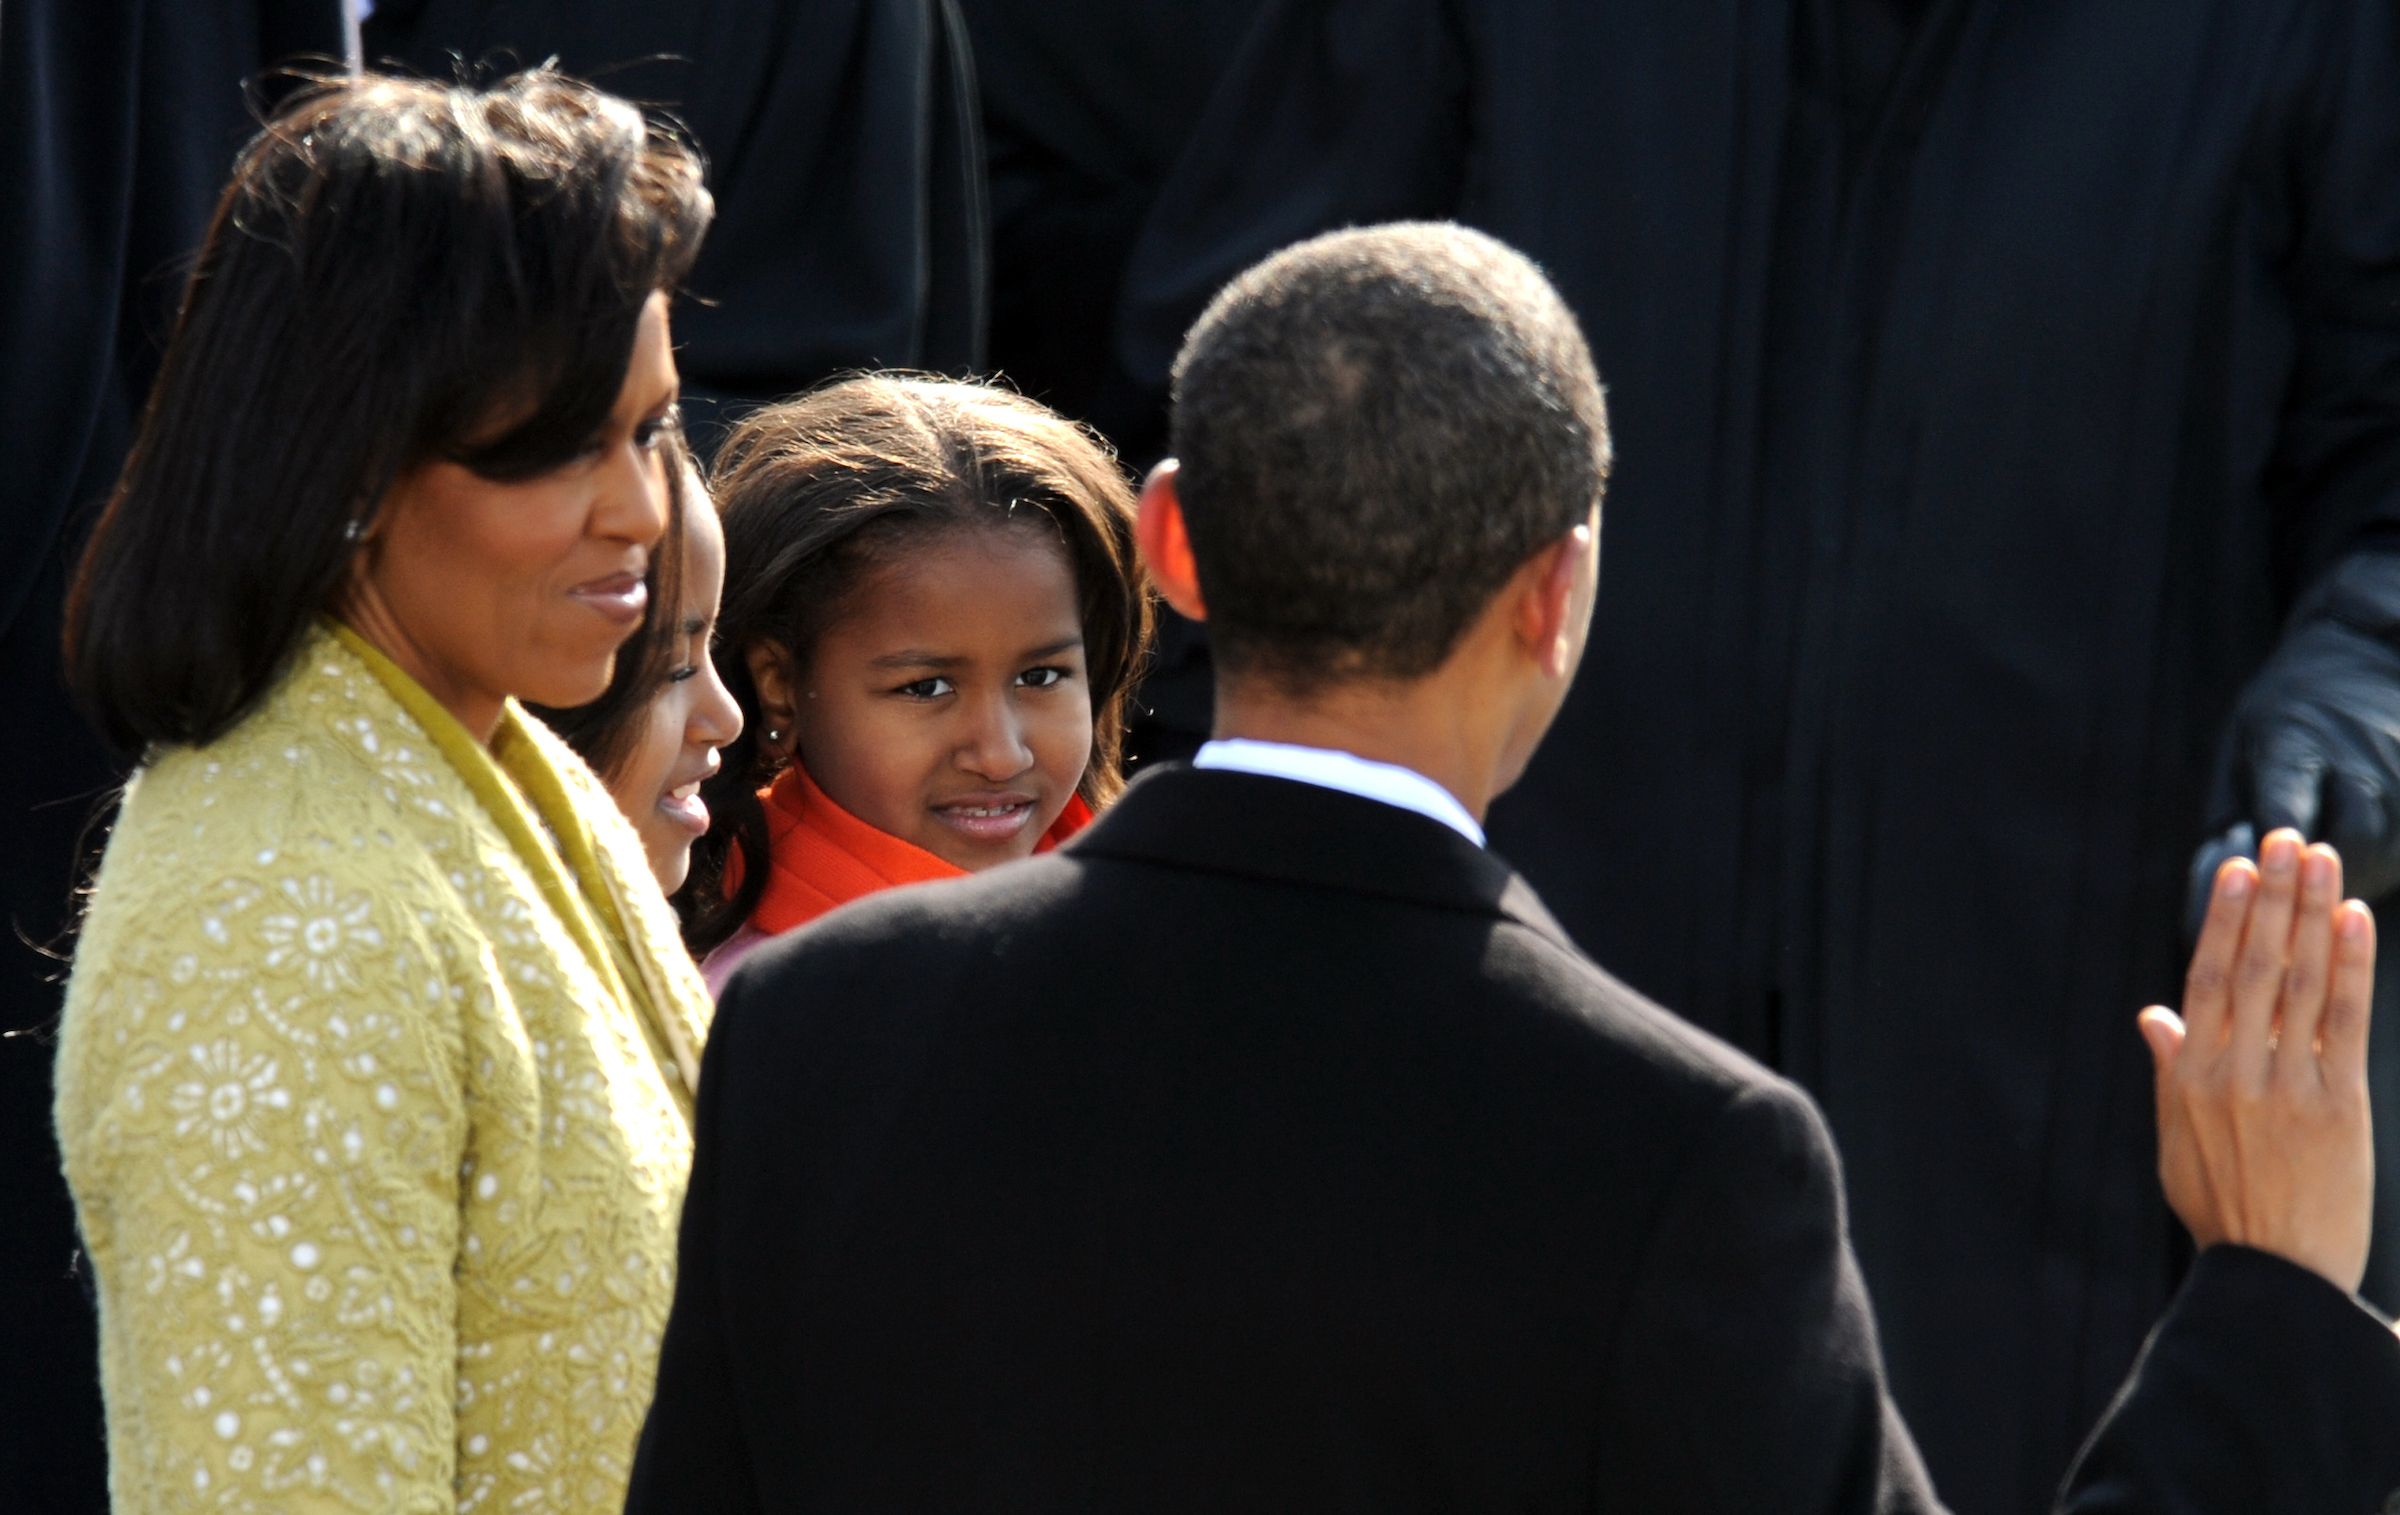 President Barack Obama is sworn in as the 44th president. (CQ Roll Call file photo)